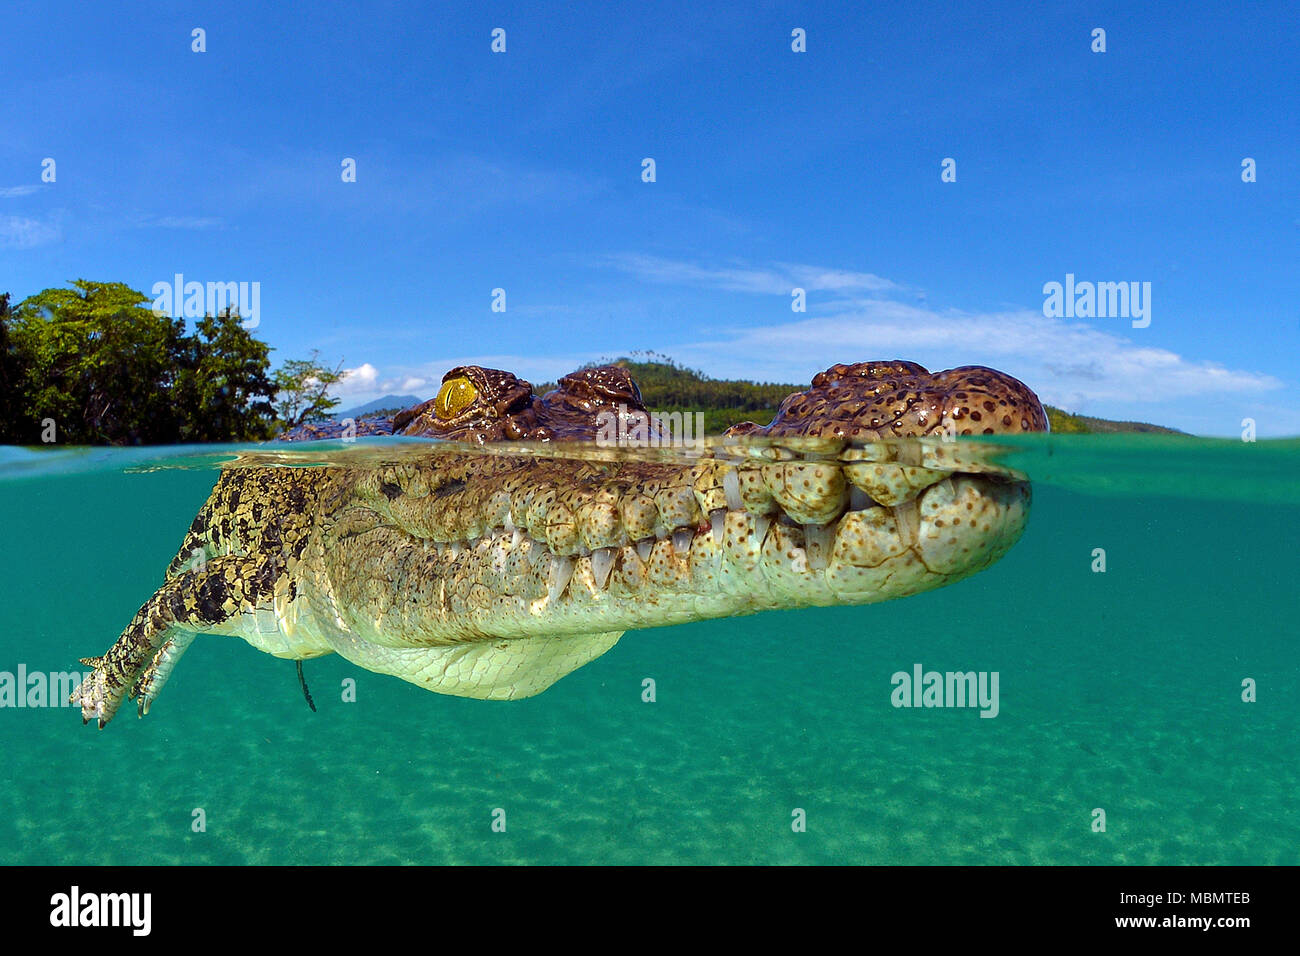 Saltwater crocodile (Crocodylus porosus), largest of all living reptiles, split image, Kimbe Bay, West New Britain, Papua New Guinea - Stock Image